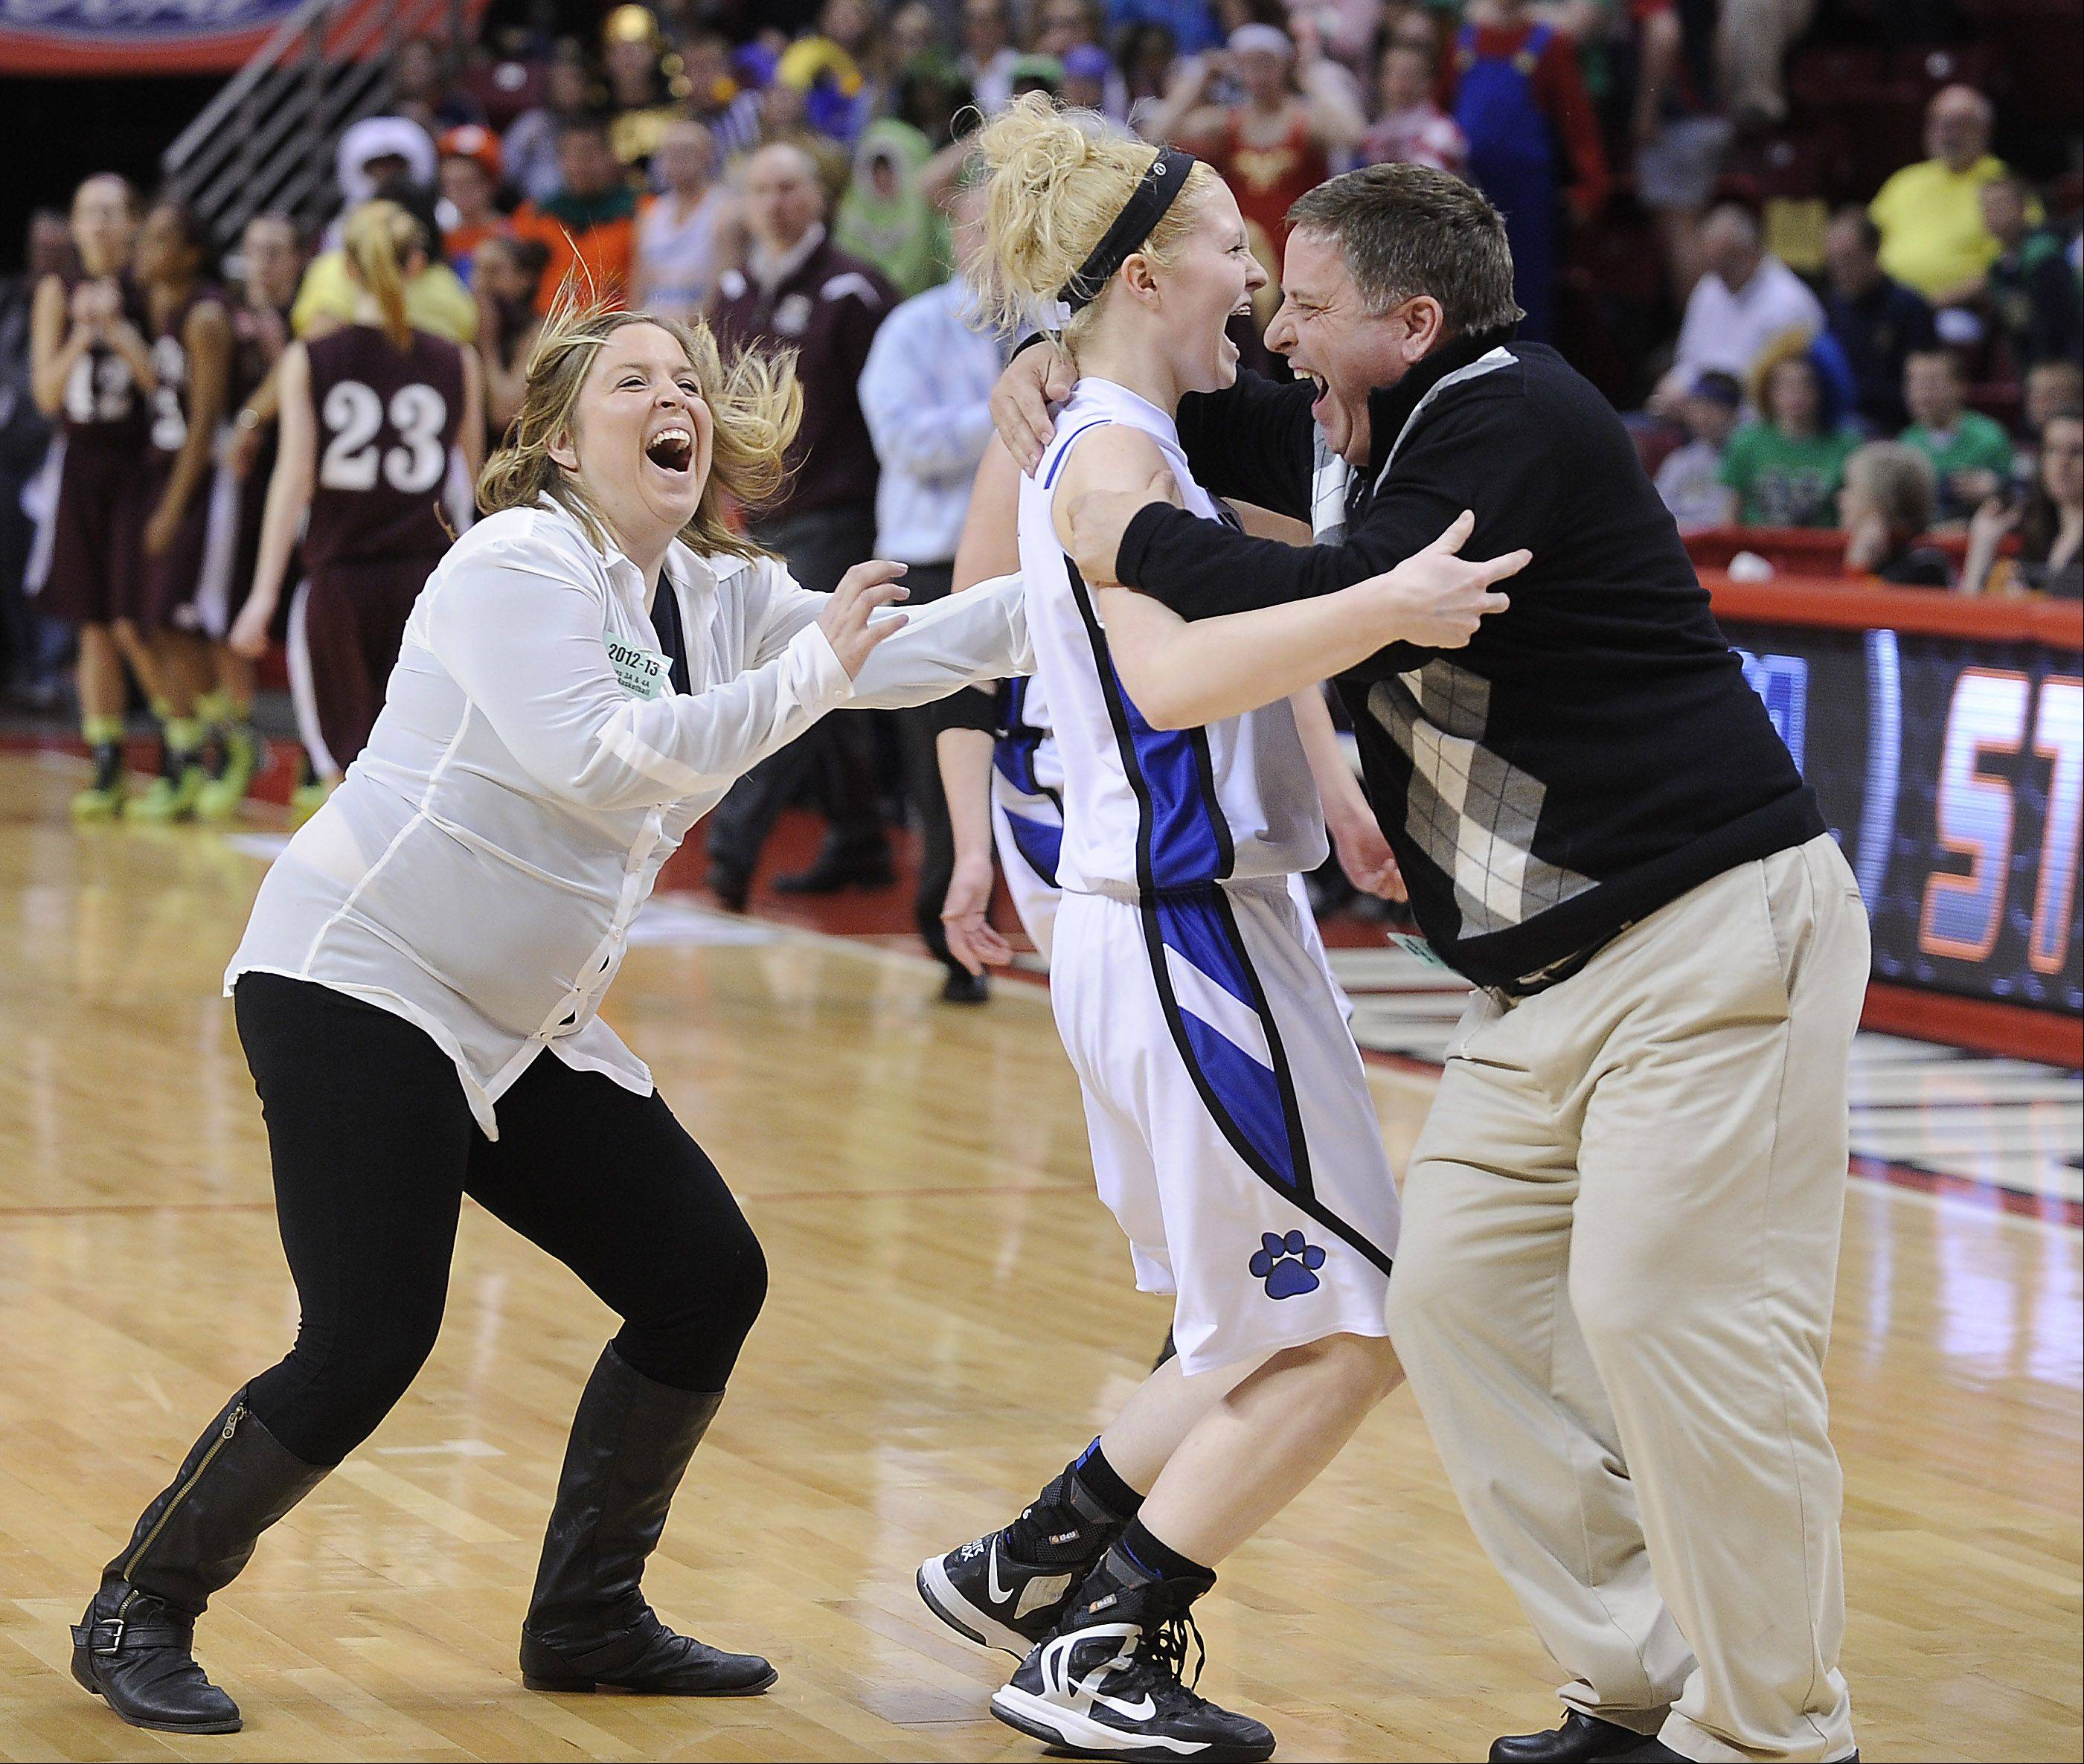 Vernon Hills Sydney Smith celebrates with her coaches after they beat Montini in overtime in the class 3A semifinal game Friday in Normal.